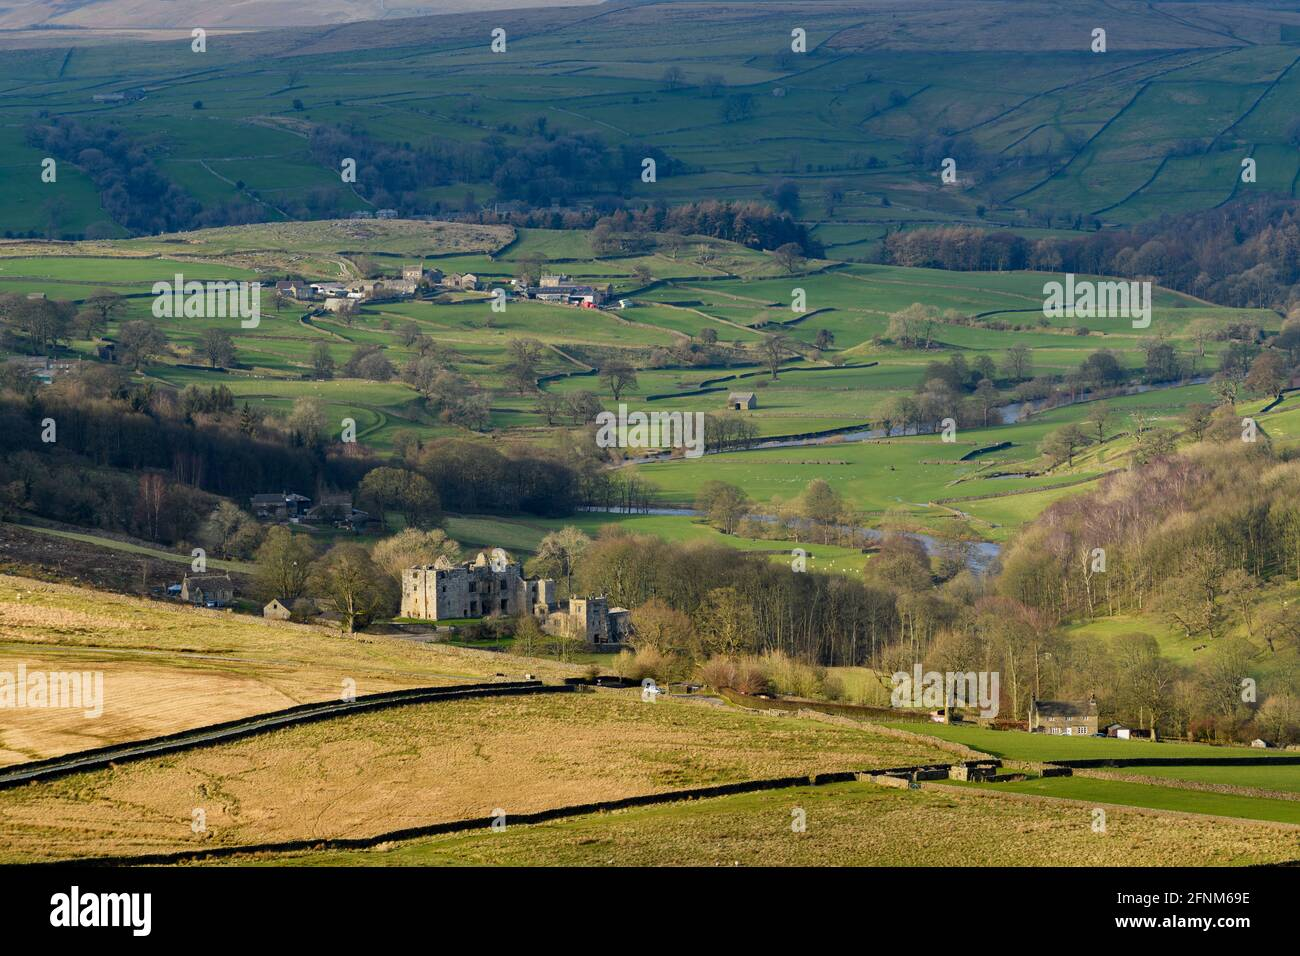 Scenic countryside view of Wharfedale (wide green valley, rolling hills, high upland fells, sunlit Barden Tower ruins) - Yorkshire Dales, England, UK. Stock Photo